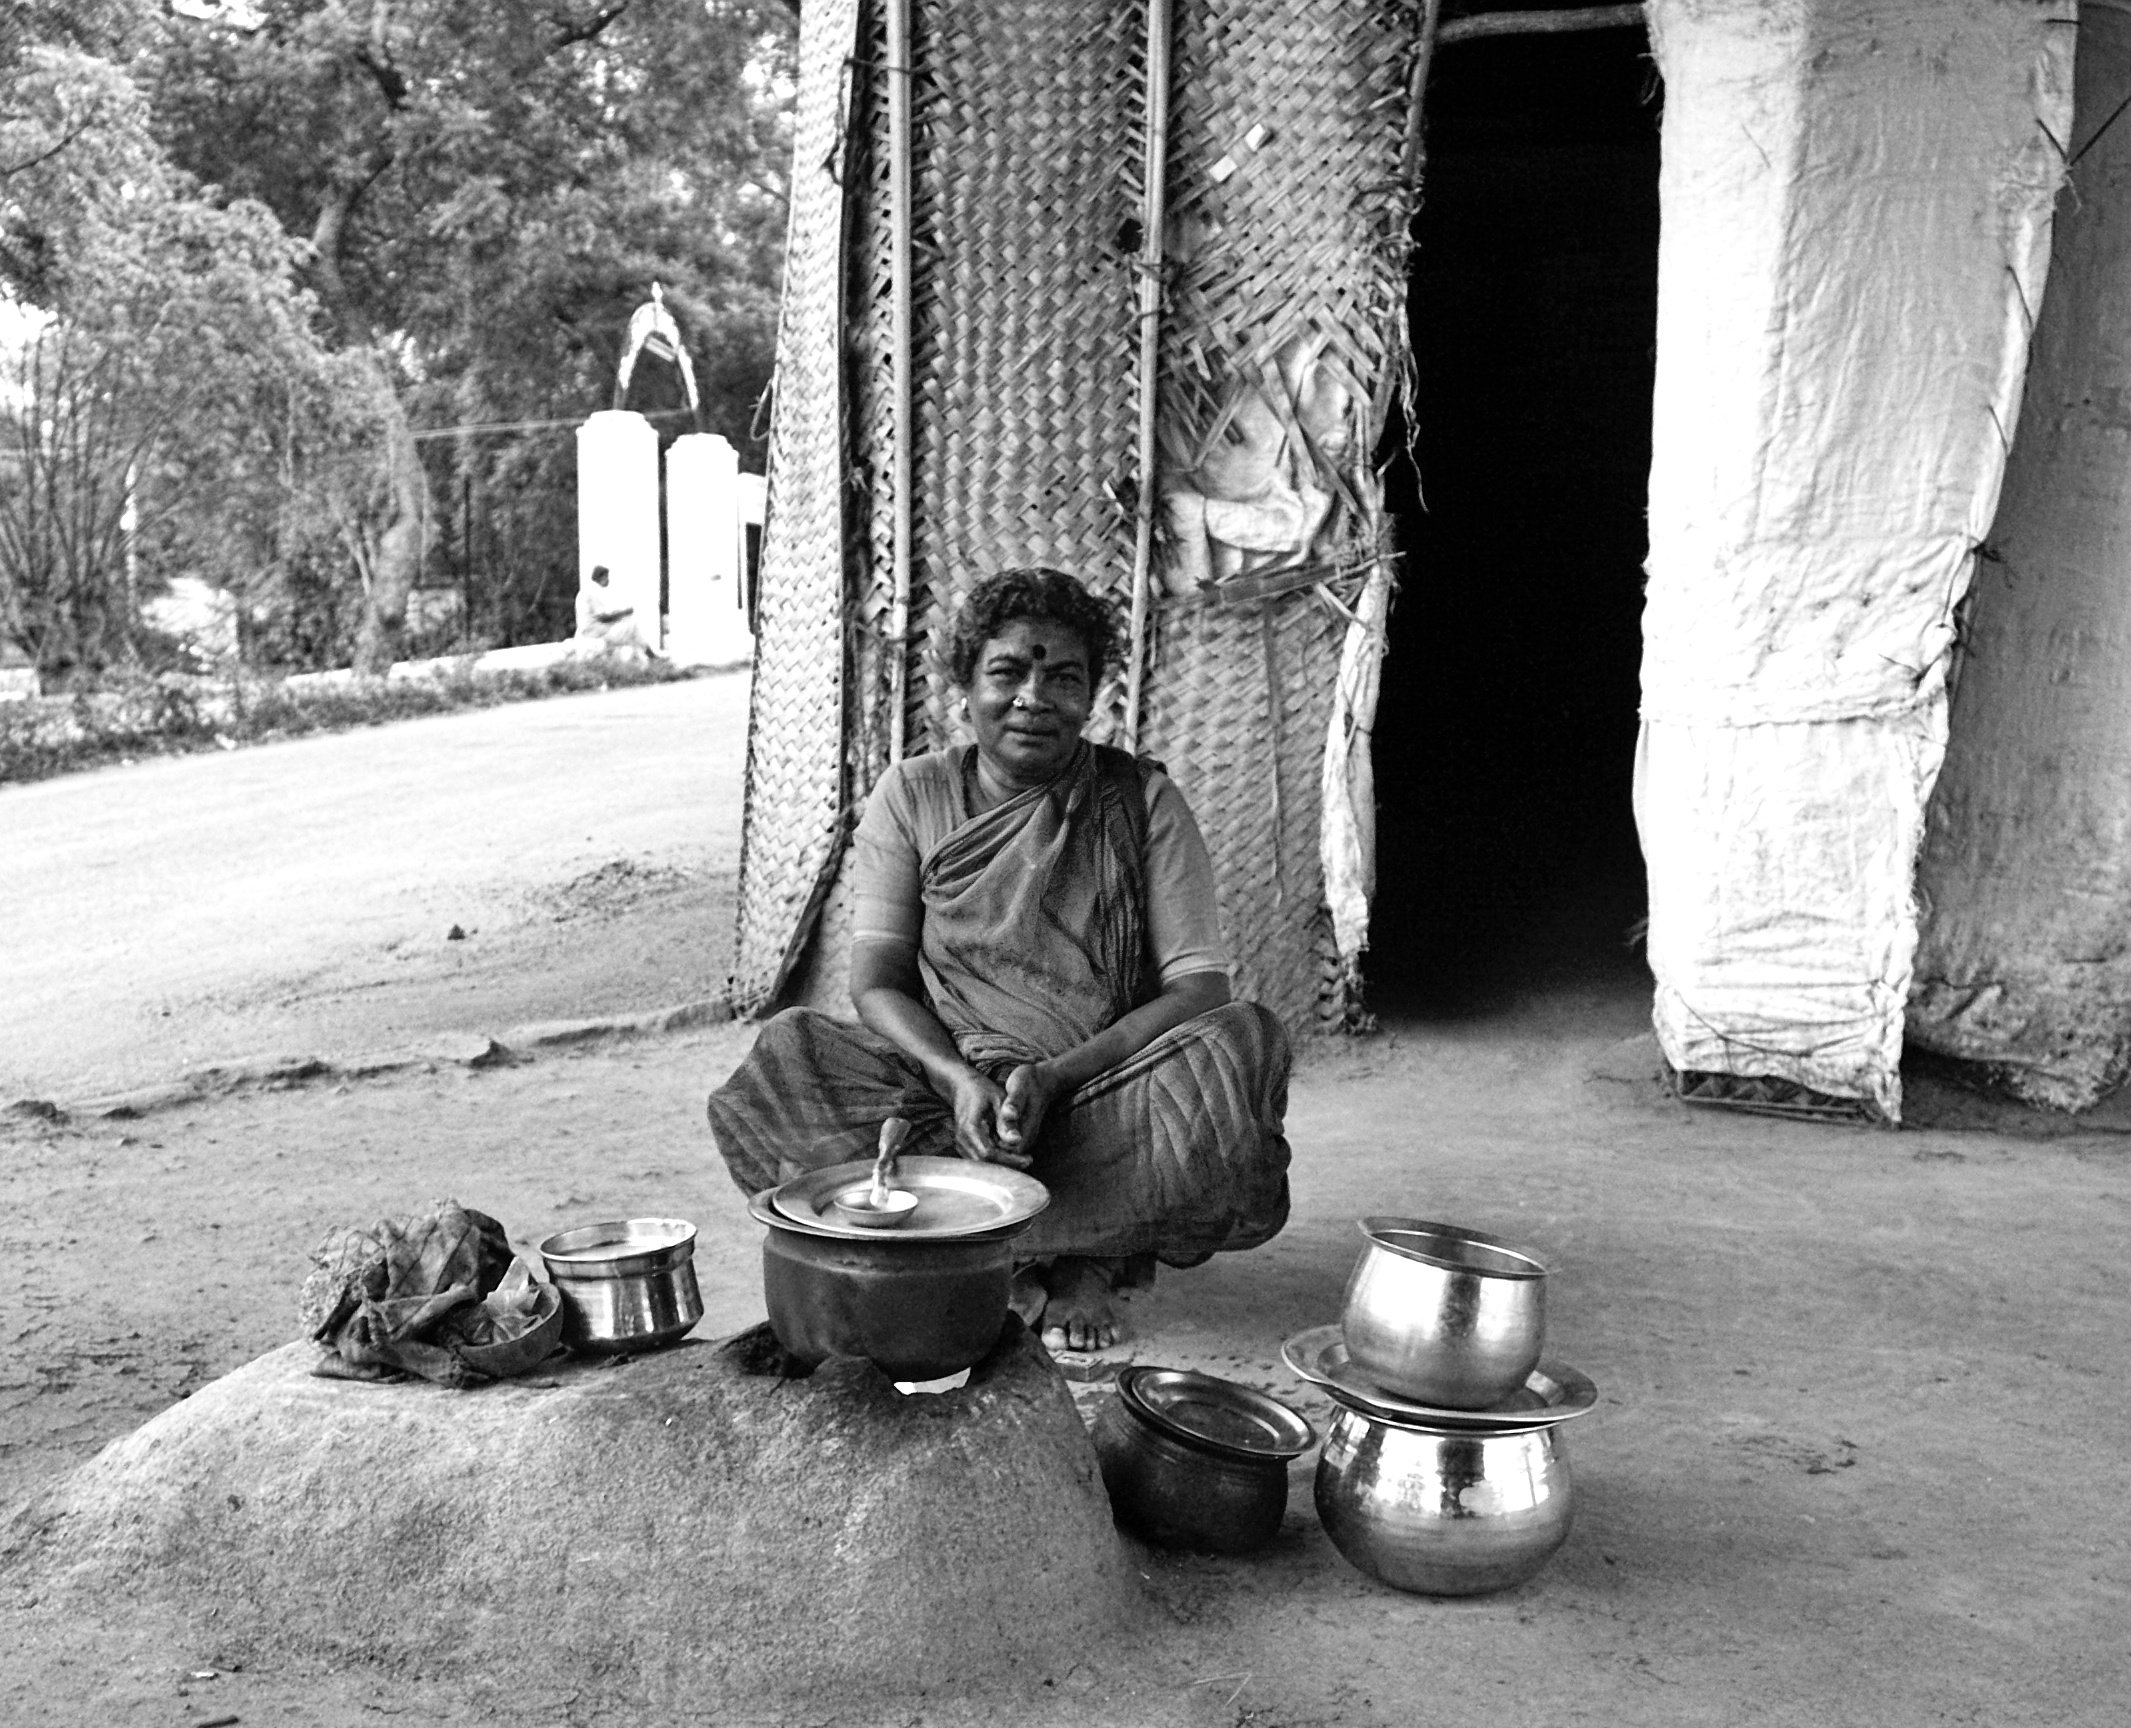 She had setup a small home under the flyover bridge with few thatches and cloths and preparing her evening meal. She got initially afraid thinking I was some enforcement officer. She was happy after I pacified her.